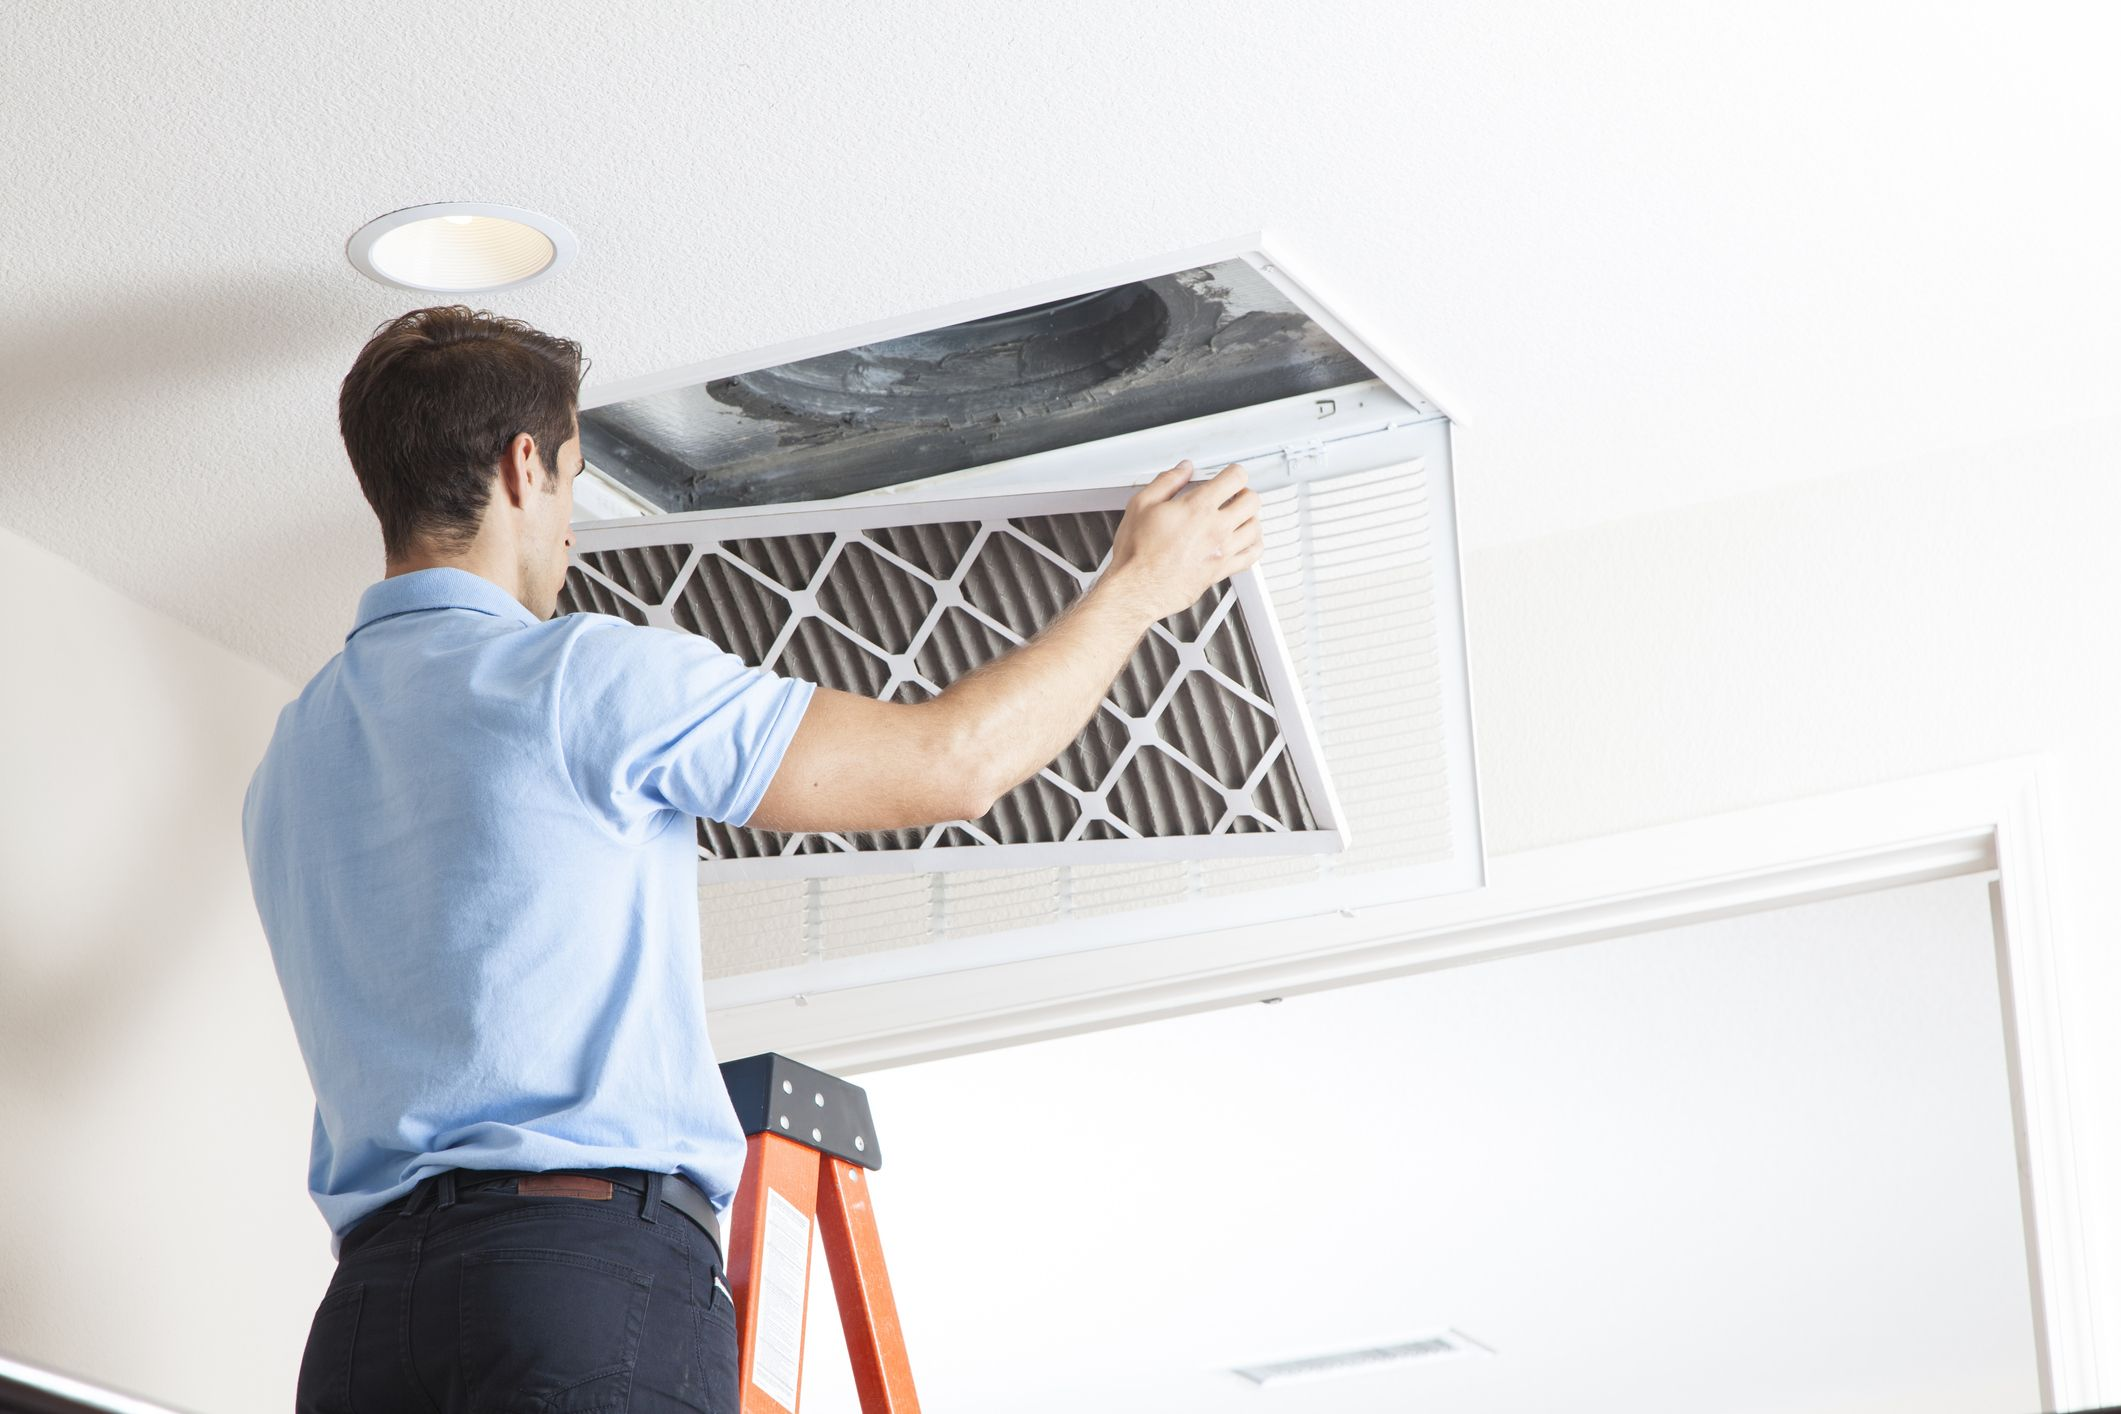 Worried About Allergies? Here Are Things to Know About Your Air Filter